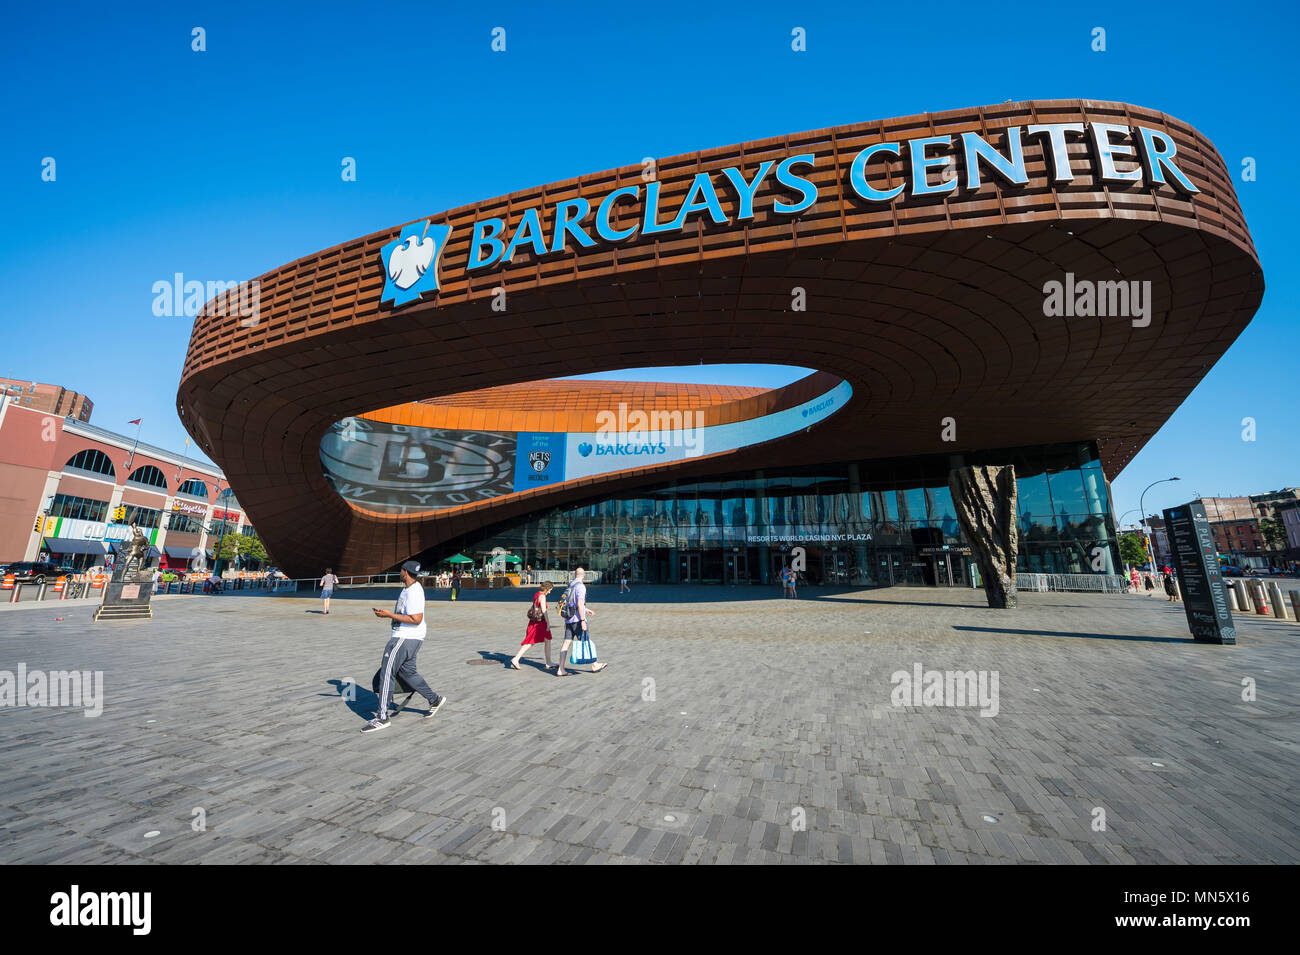 NEW YORK CITY - AUGUST 30, 2016: Pedestrians pass under the distinctive architecture of the Barclays Center, a  sports and entertainment arena Stock Photo